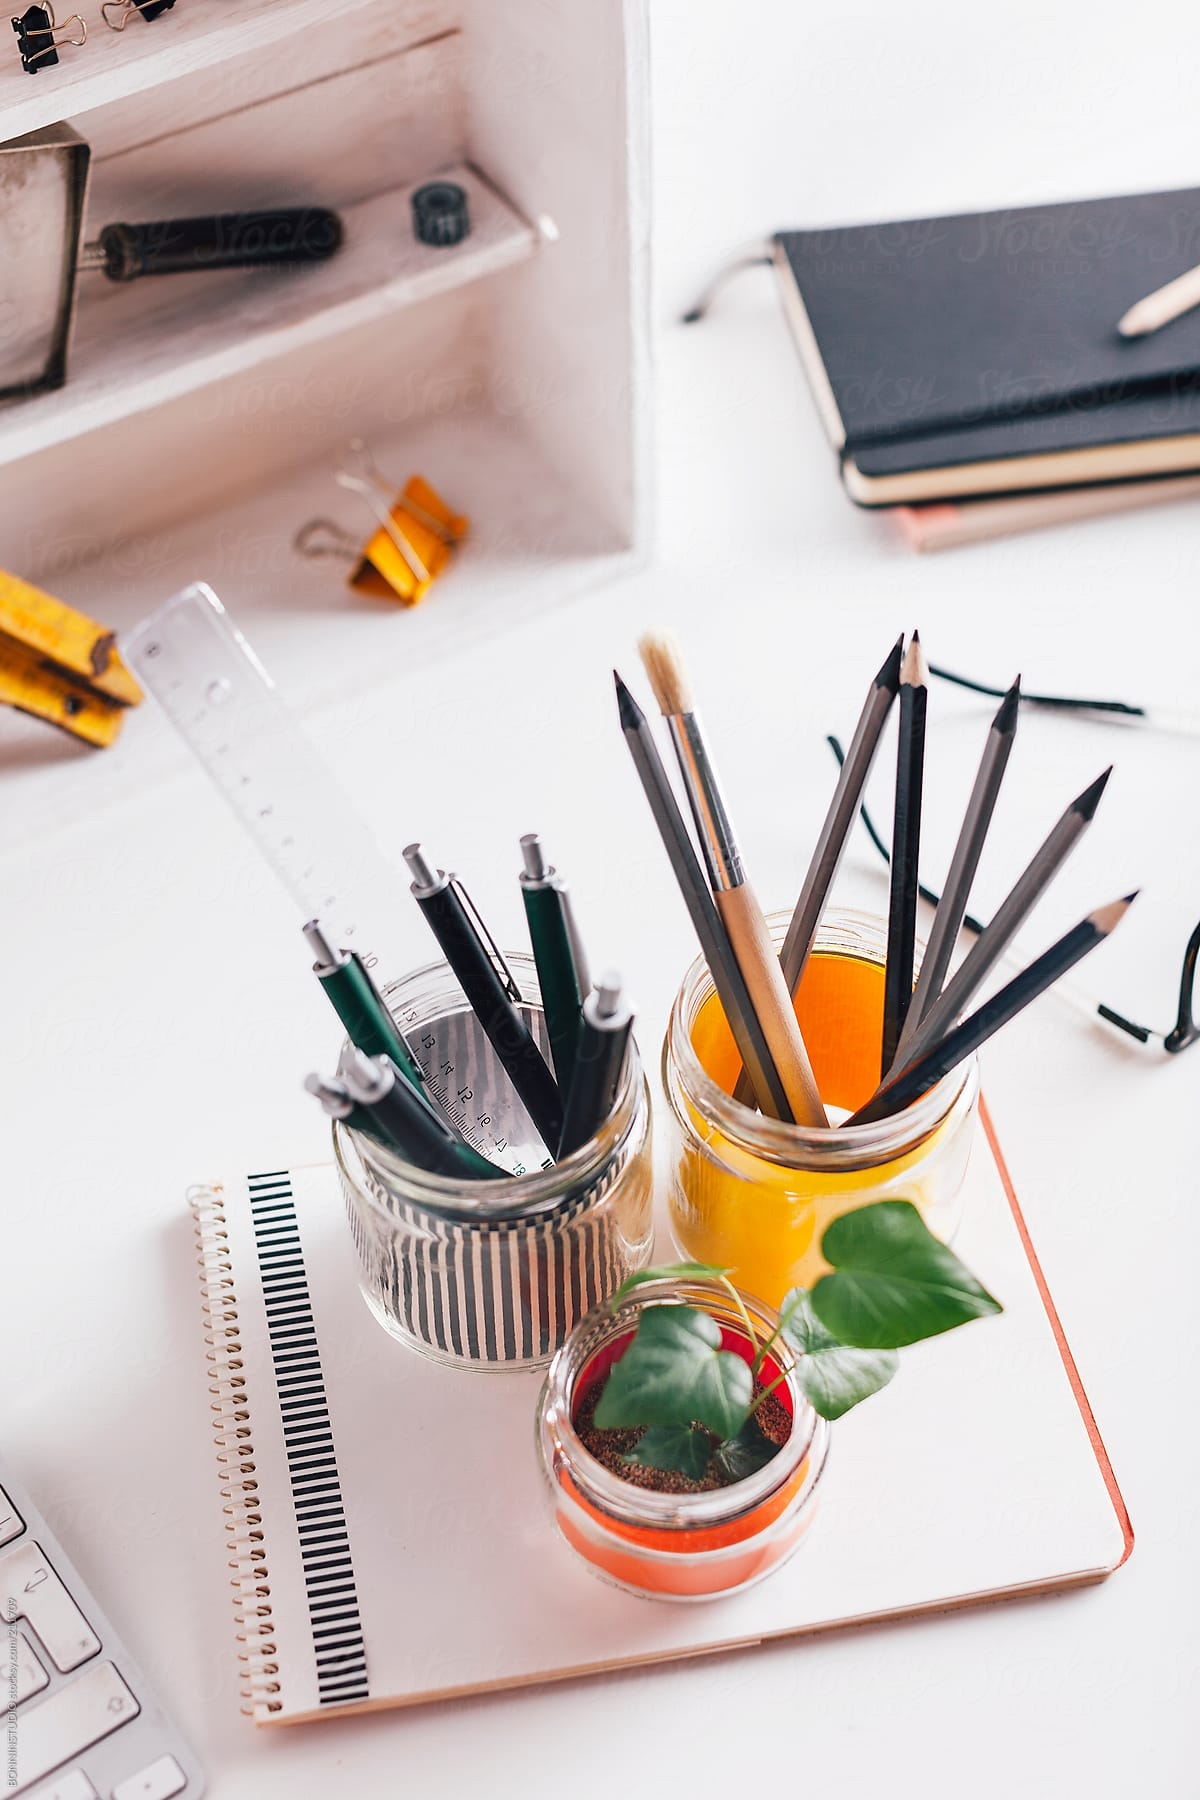 Diy Pencil Holder Jars On A Cute White Home Desk Stocksy United